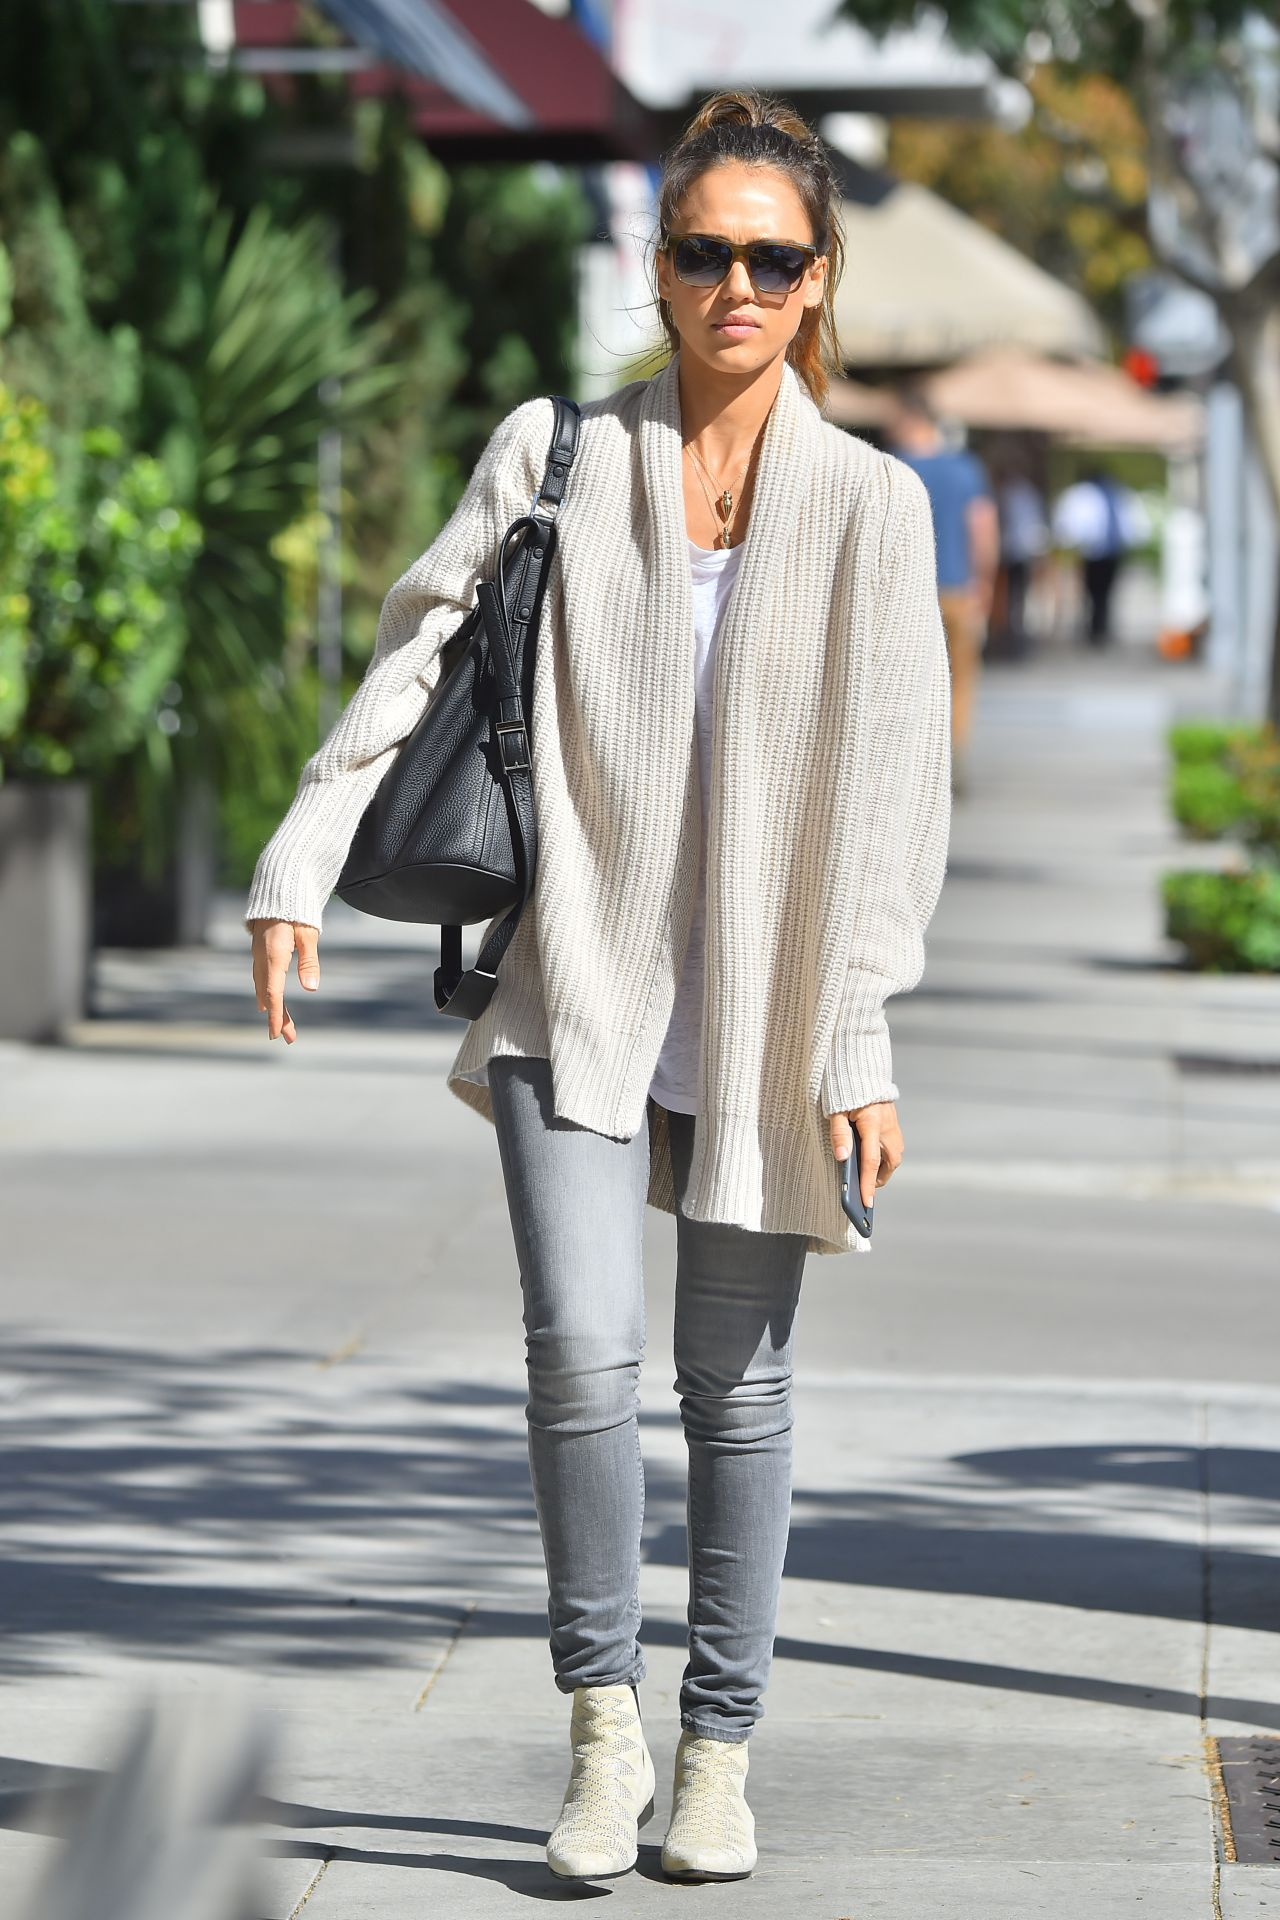 Jessica Alba Casual Fashion Out In Beverly Hills November 2014